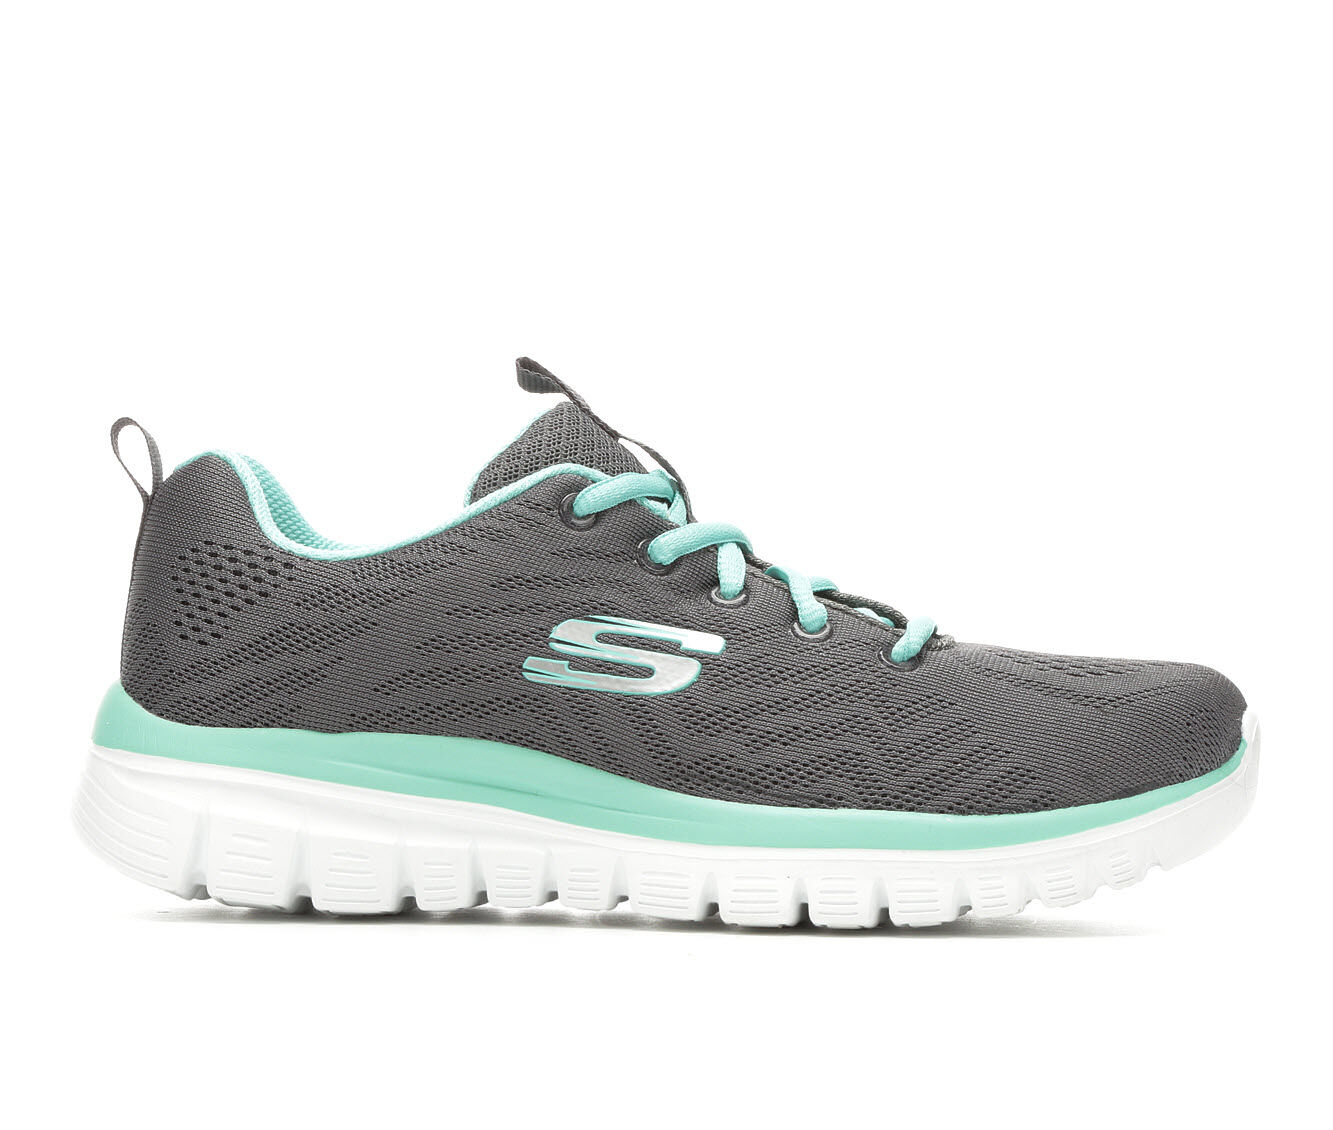 outlet very cheap discount 2014 new Women's Skechers Twisted Fortune 12614 Sneakers pay with visa online clearance professional free shipping huge surprise ORjvzNF